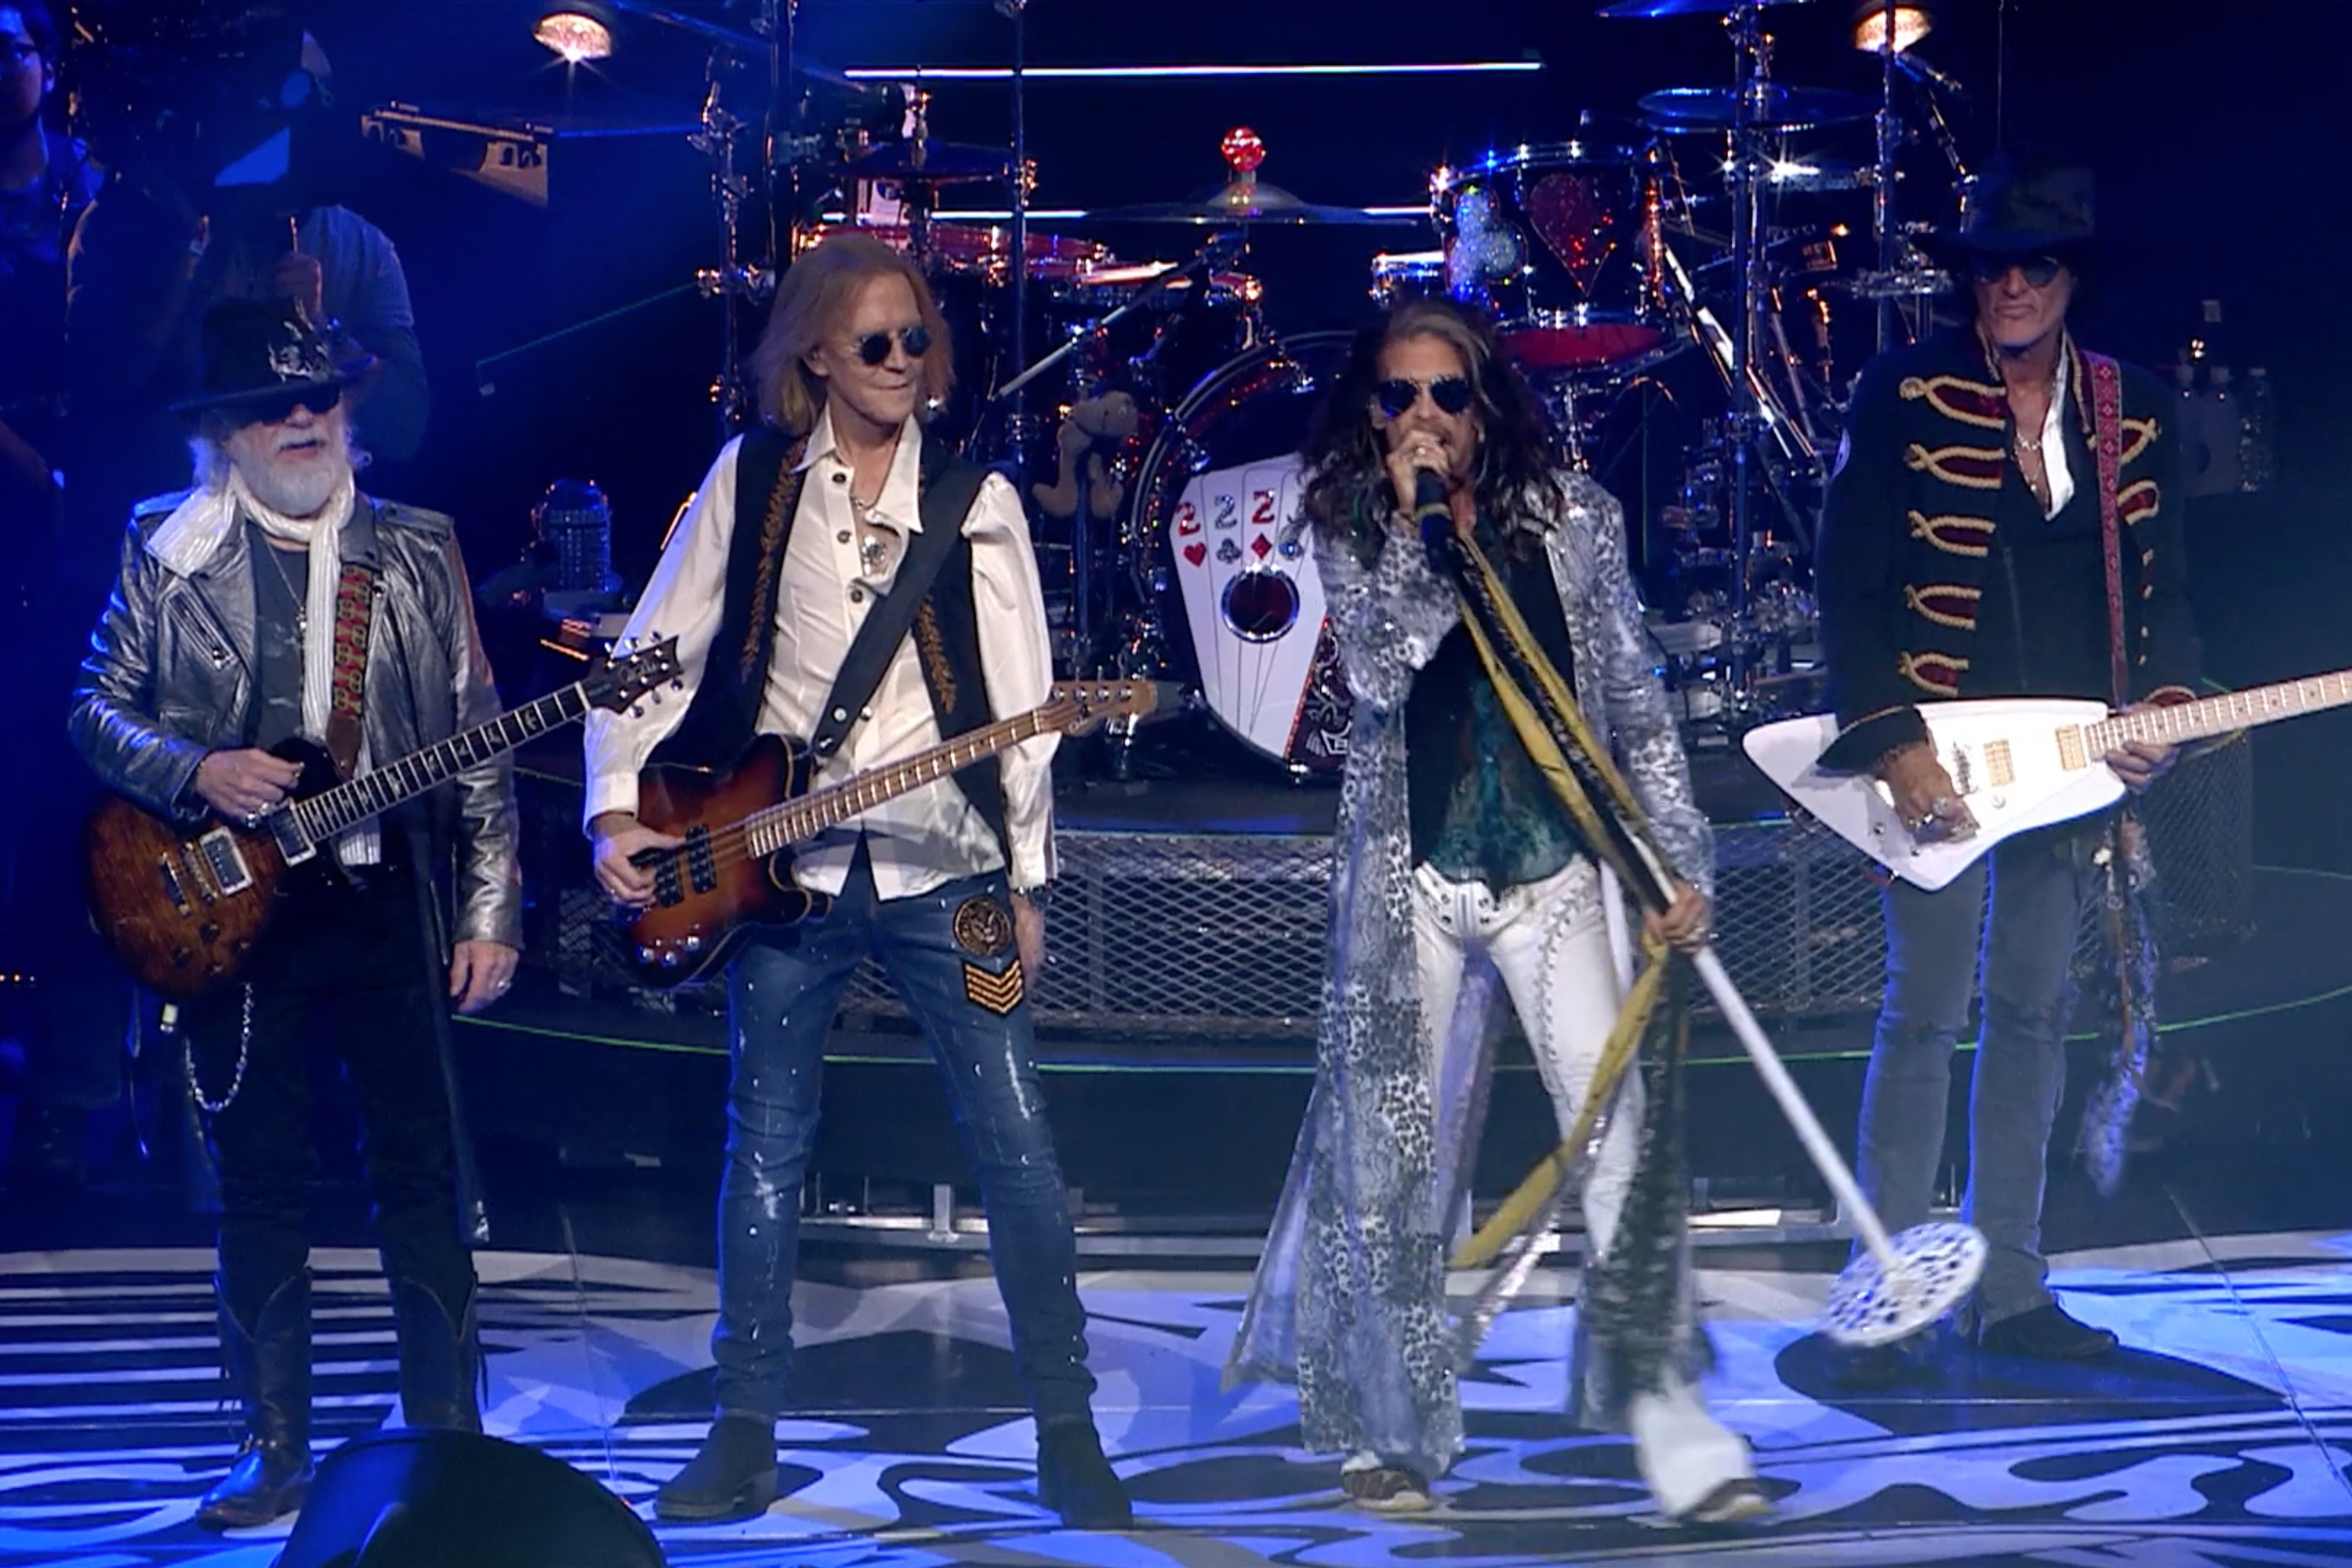 Aerosmith helps Las Vegas unfurl new tourism slogan in Grammy ad